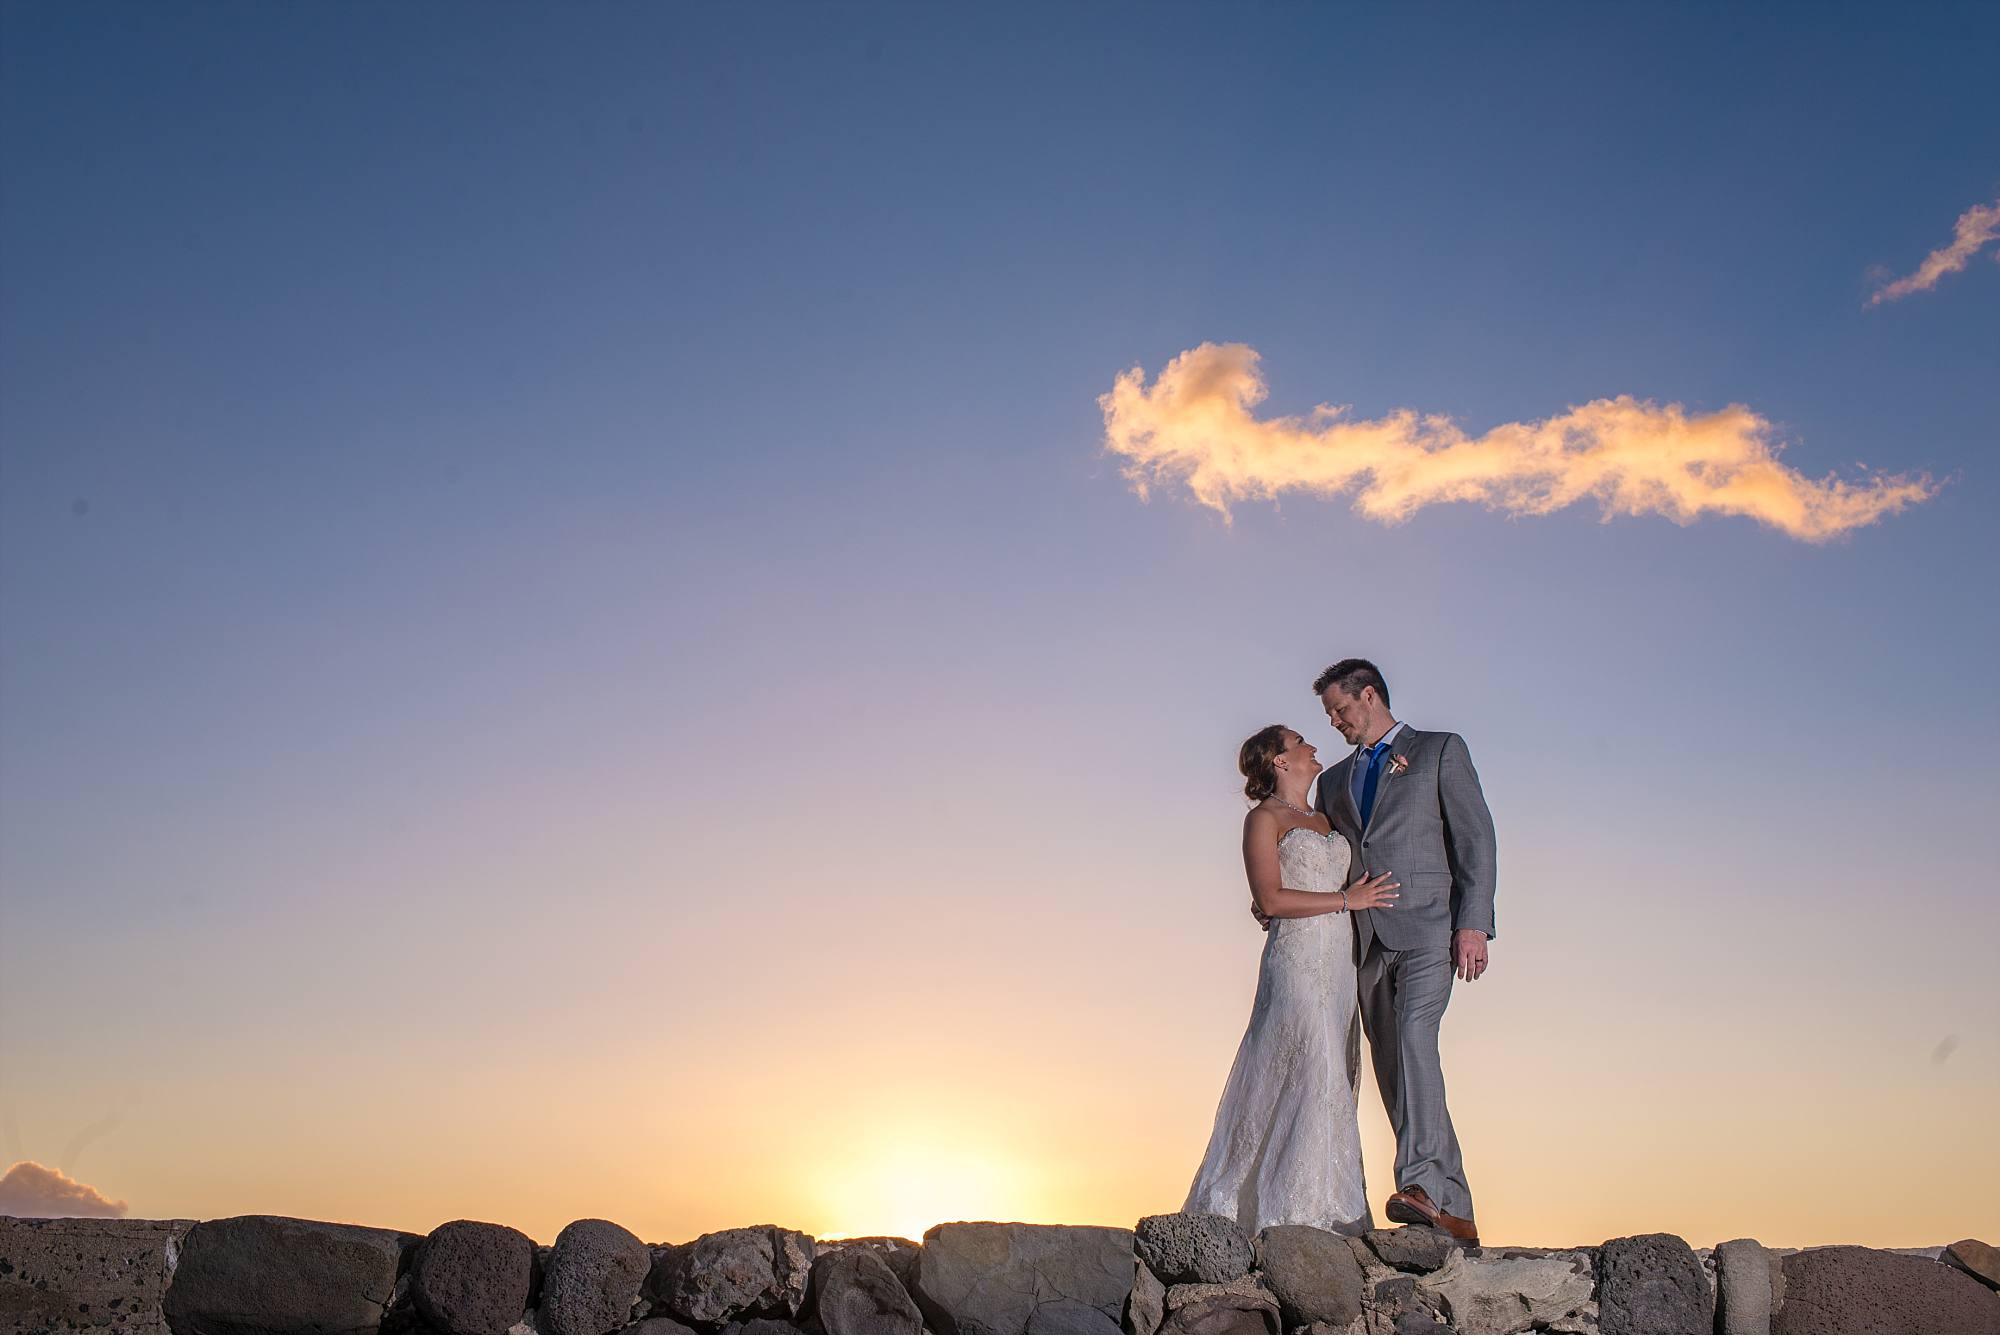 bride and groom on top of rocks